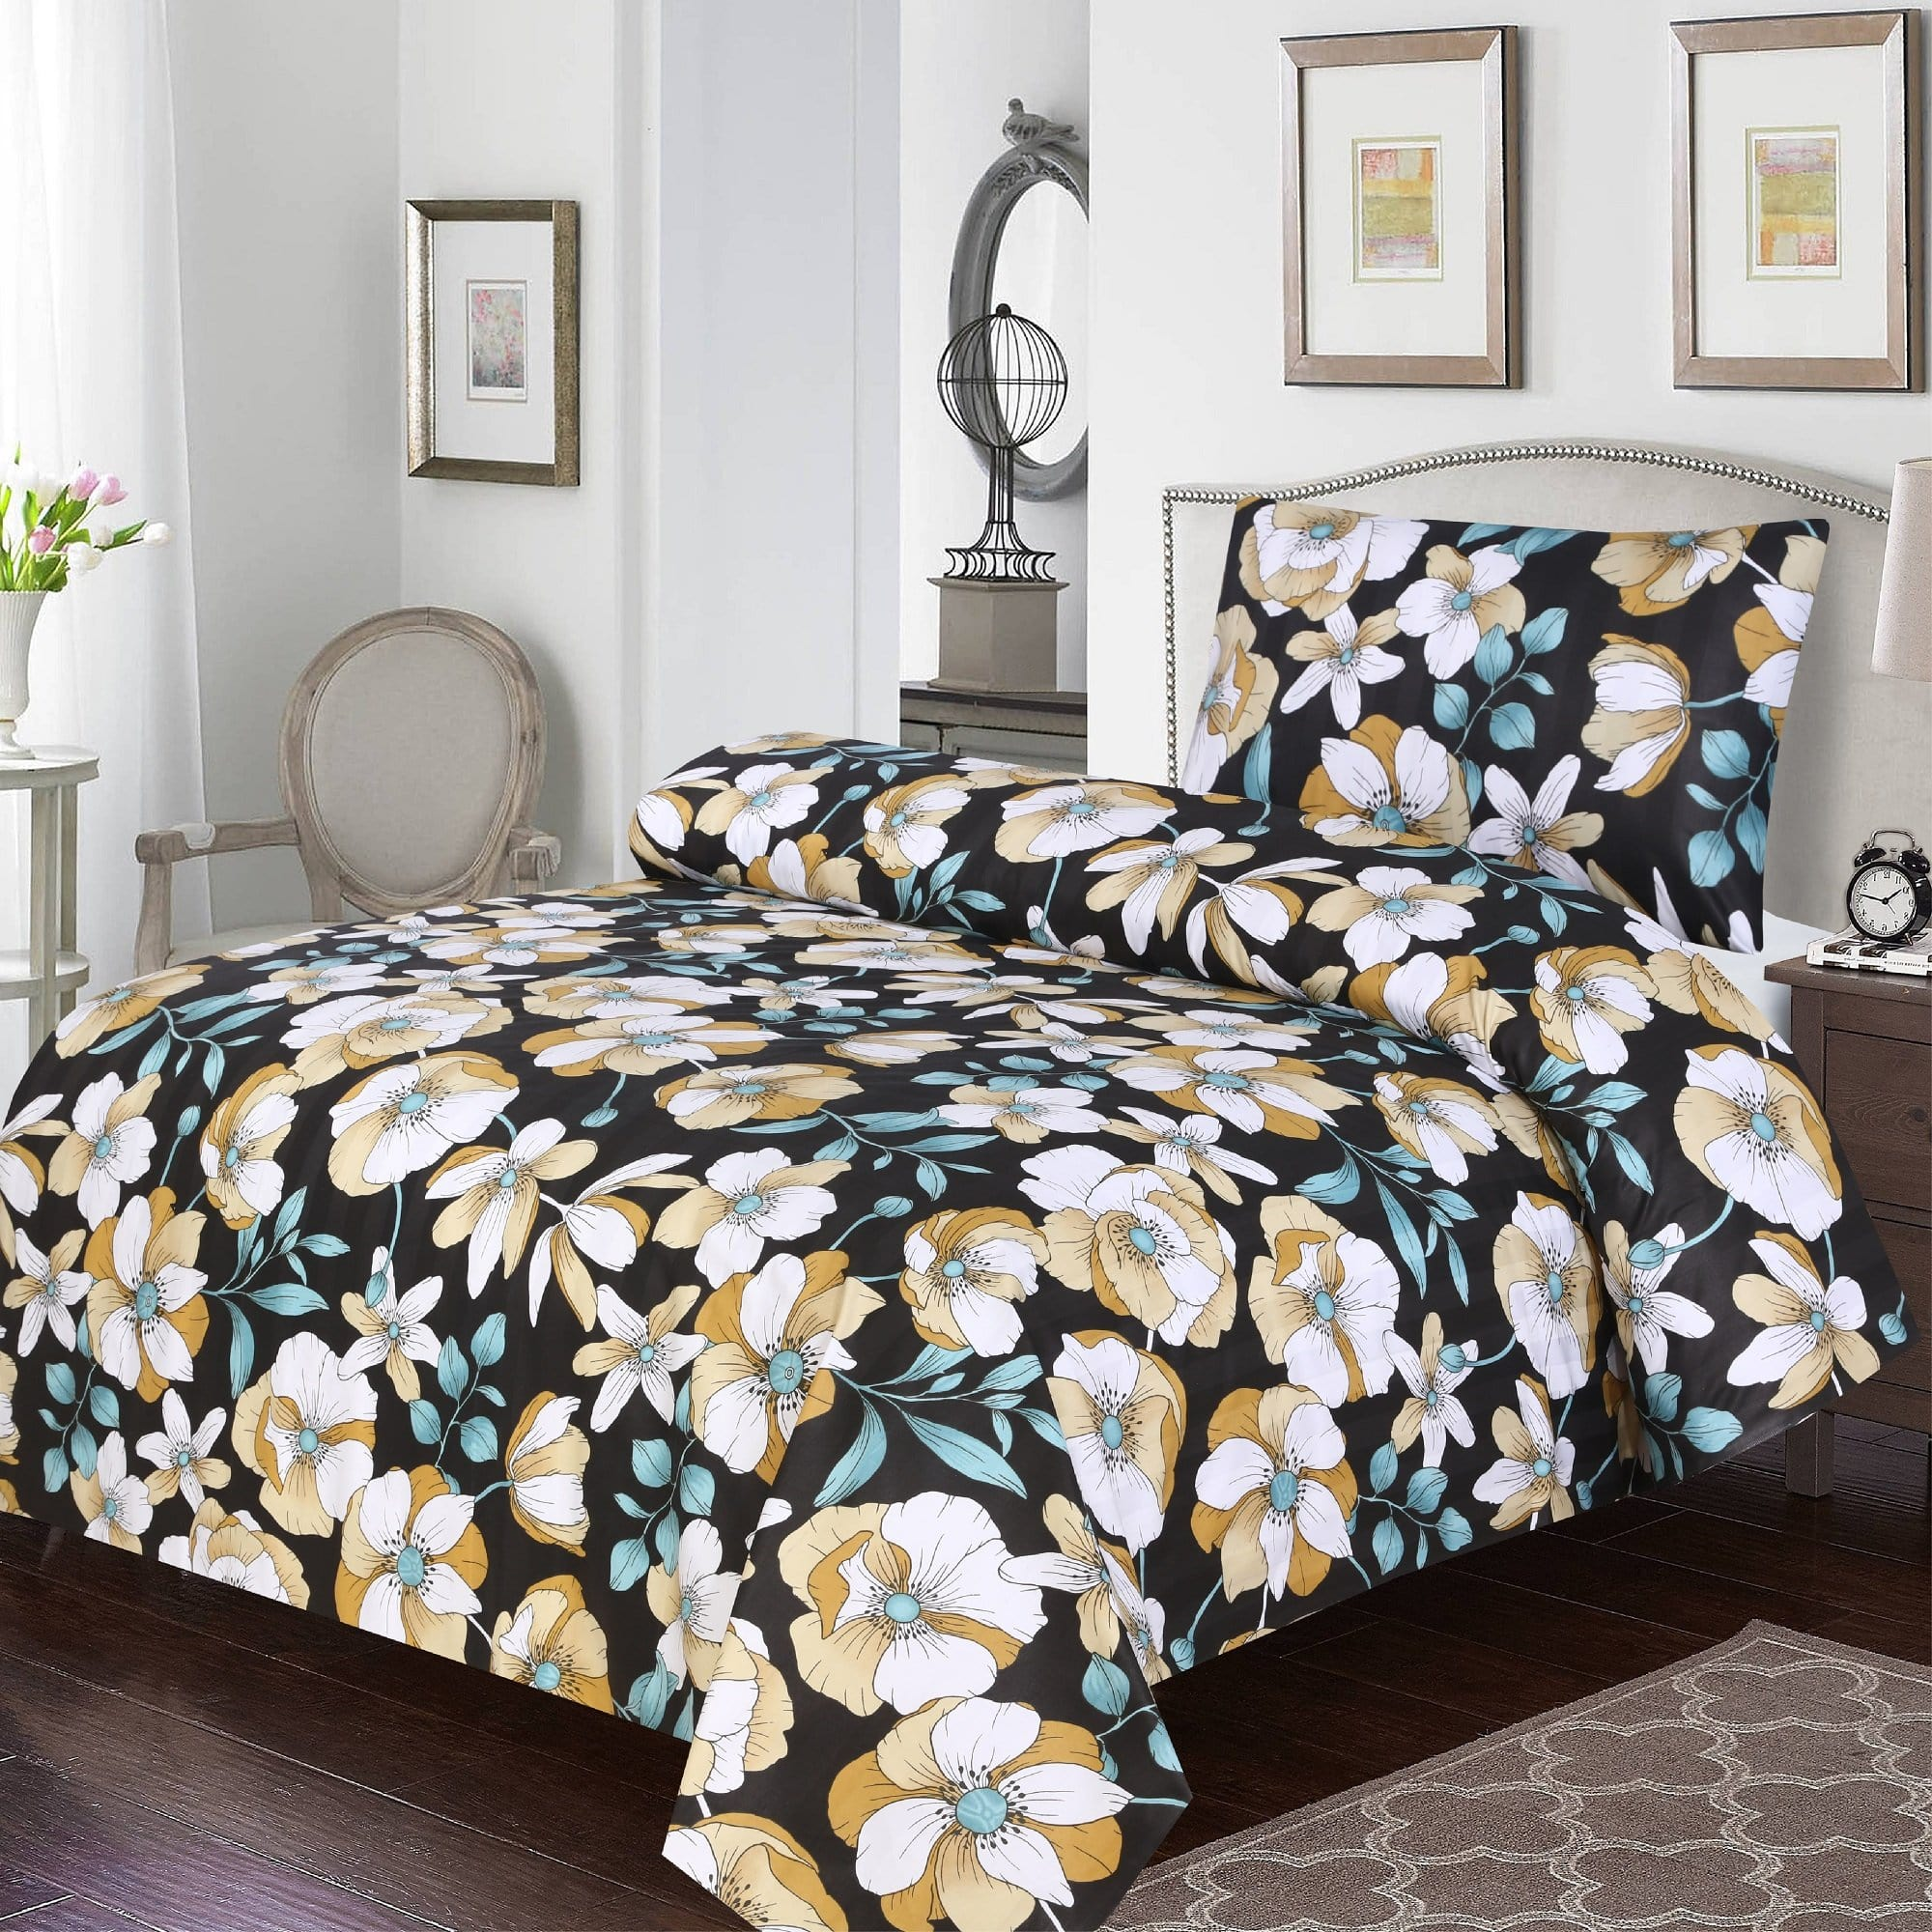 Grace D385-Cotton PC Single Size Bedsheet with 1 Pillow Cover.